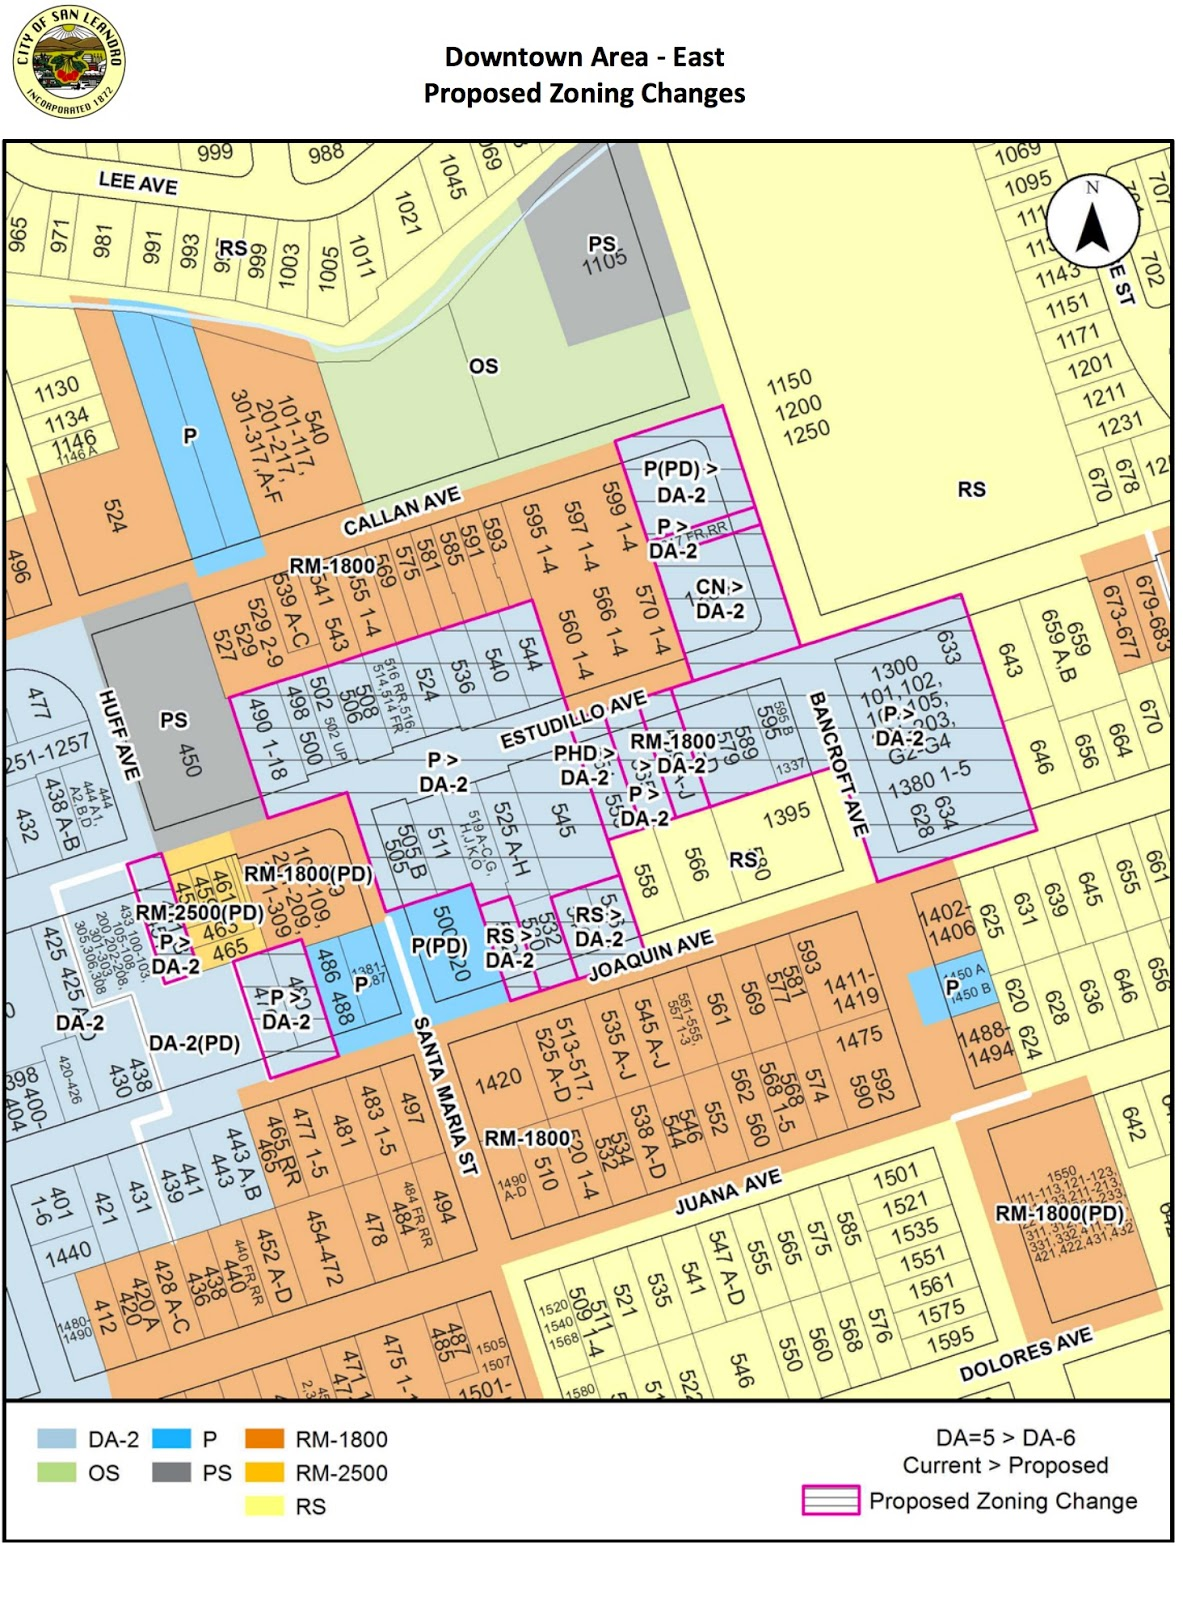 Proposed Changes To San Leandro Zoning Code Expand Downtown ... on parking map, business map, mashpee ma town map, streets map, india earthquake zone map, residential map, e zone map, survey map, climate zone map,